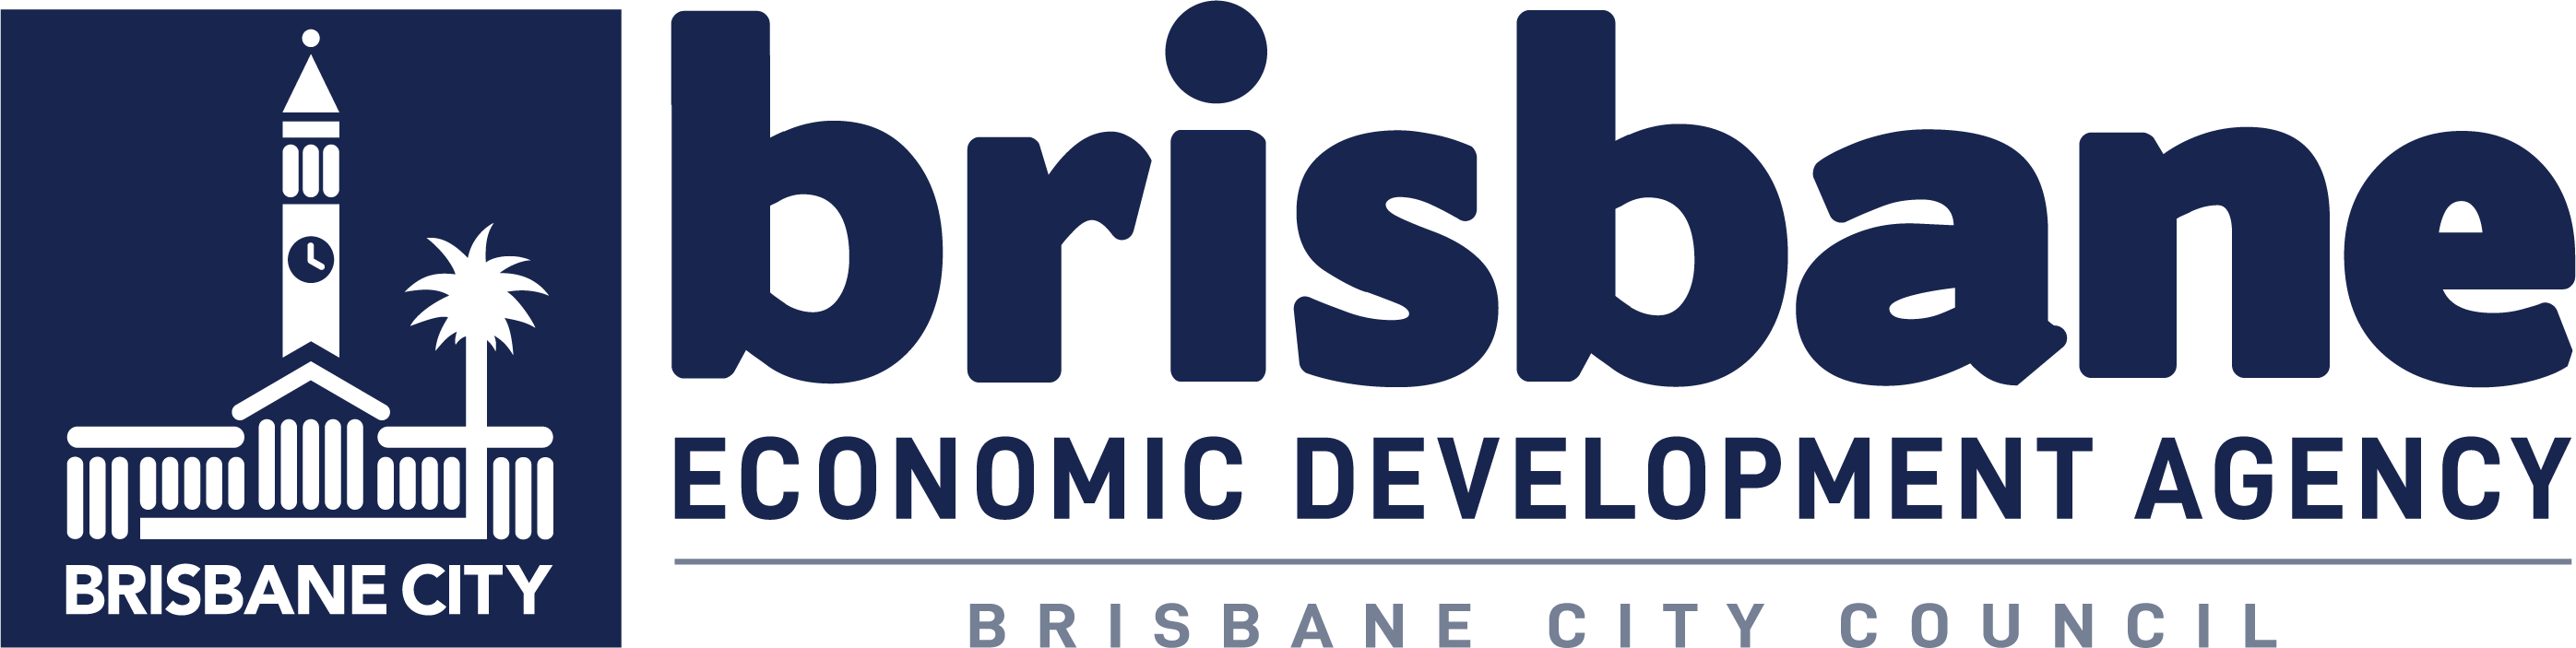 Brisbane Eda Logo Colour